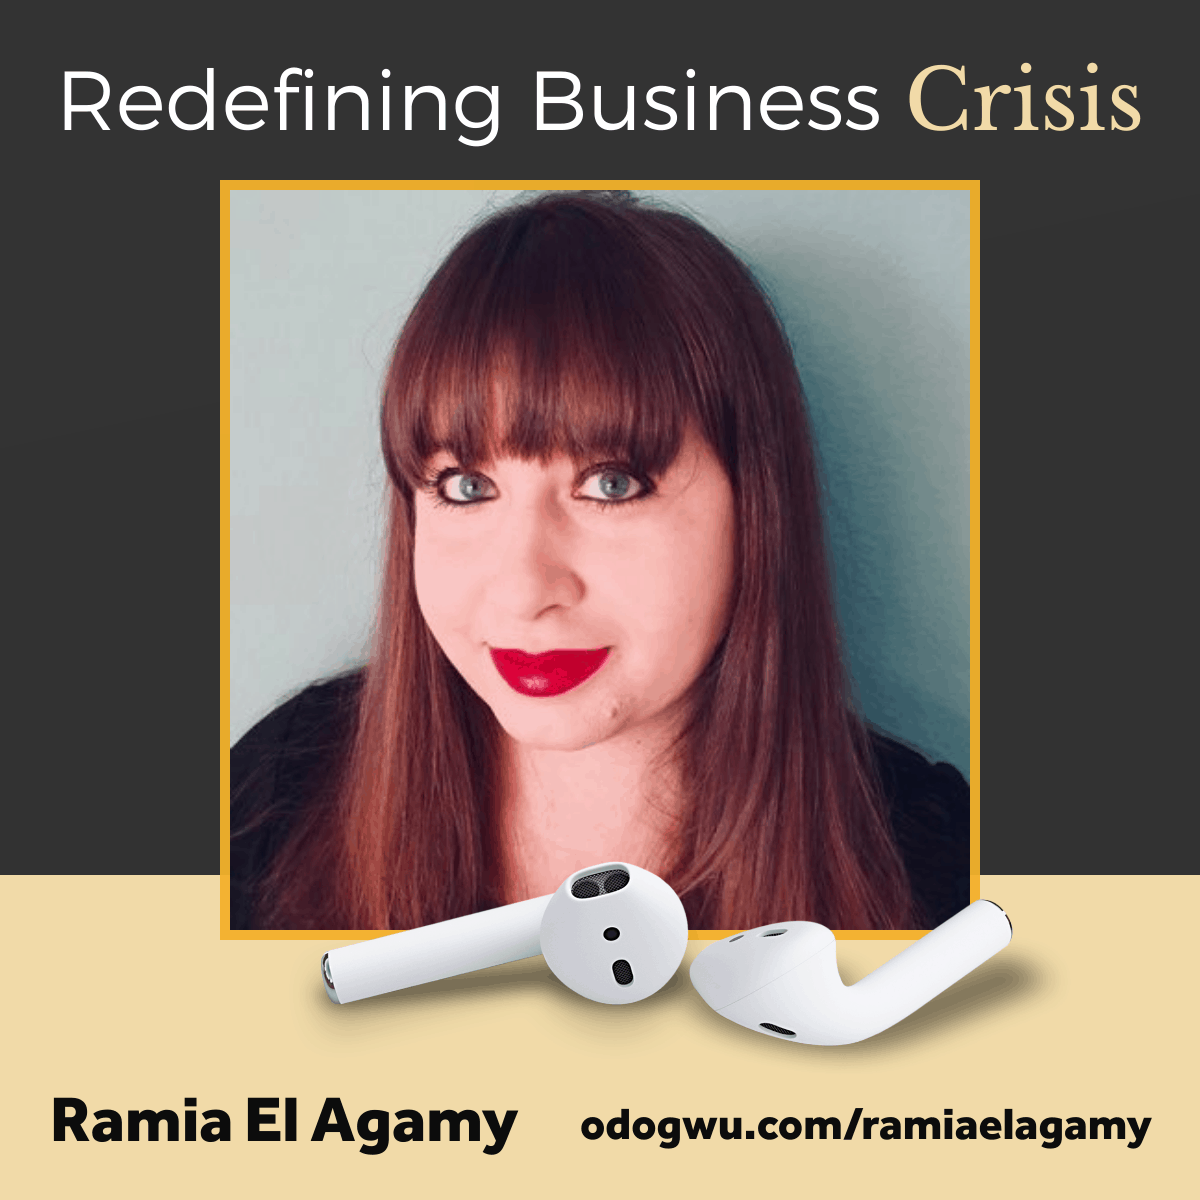 Redefining Business Crises with Ramia El Agamy